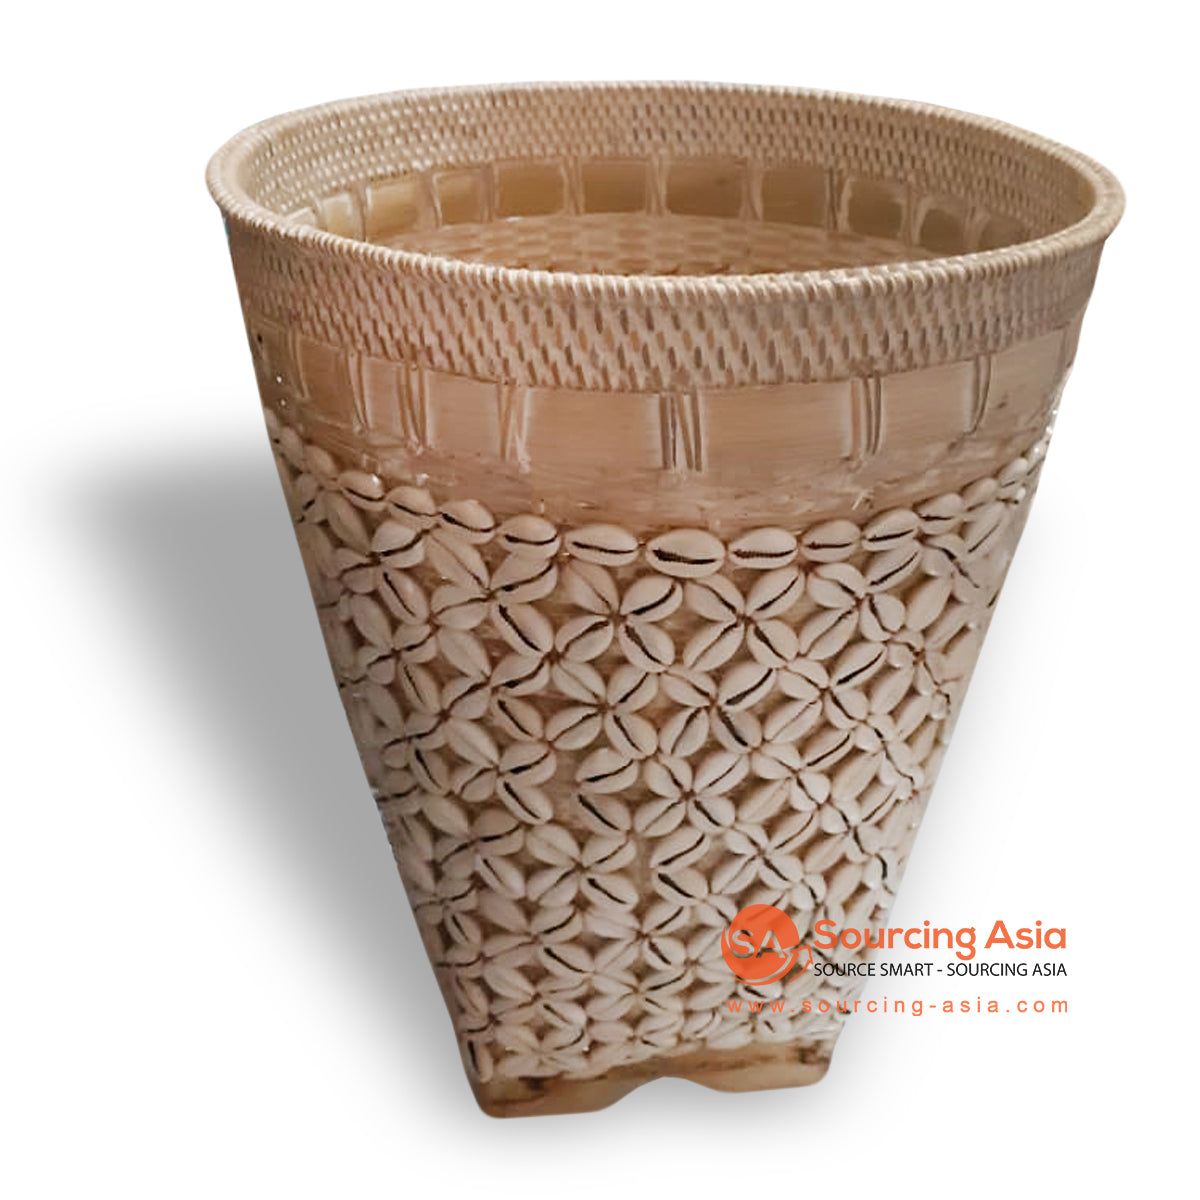 ALI072 SHELL AND RATTAN BASKET